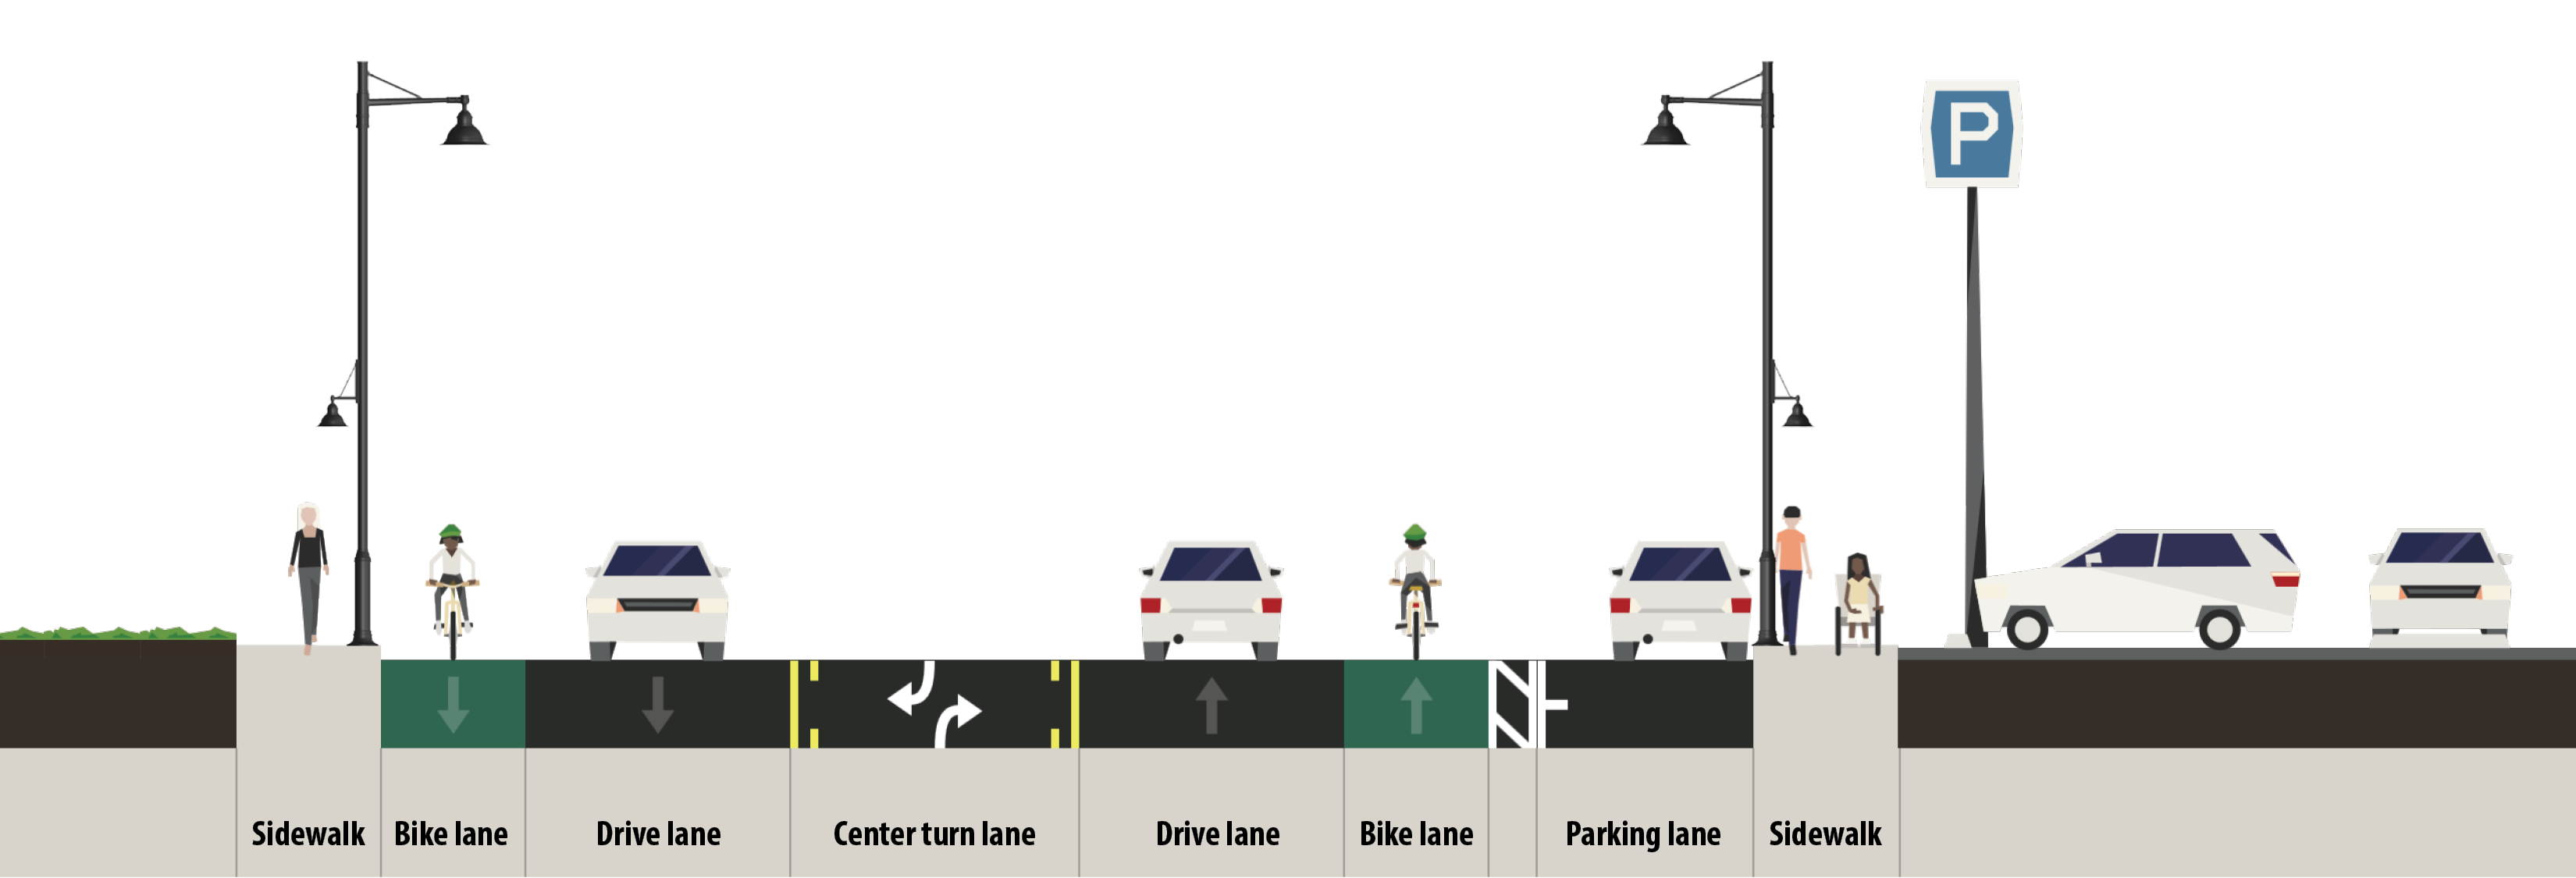 Graphic showing roadway design for multiple users.